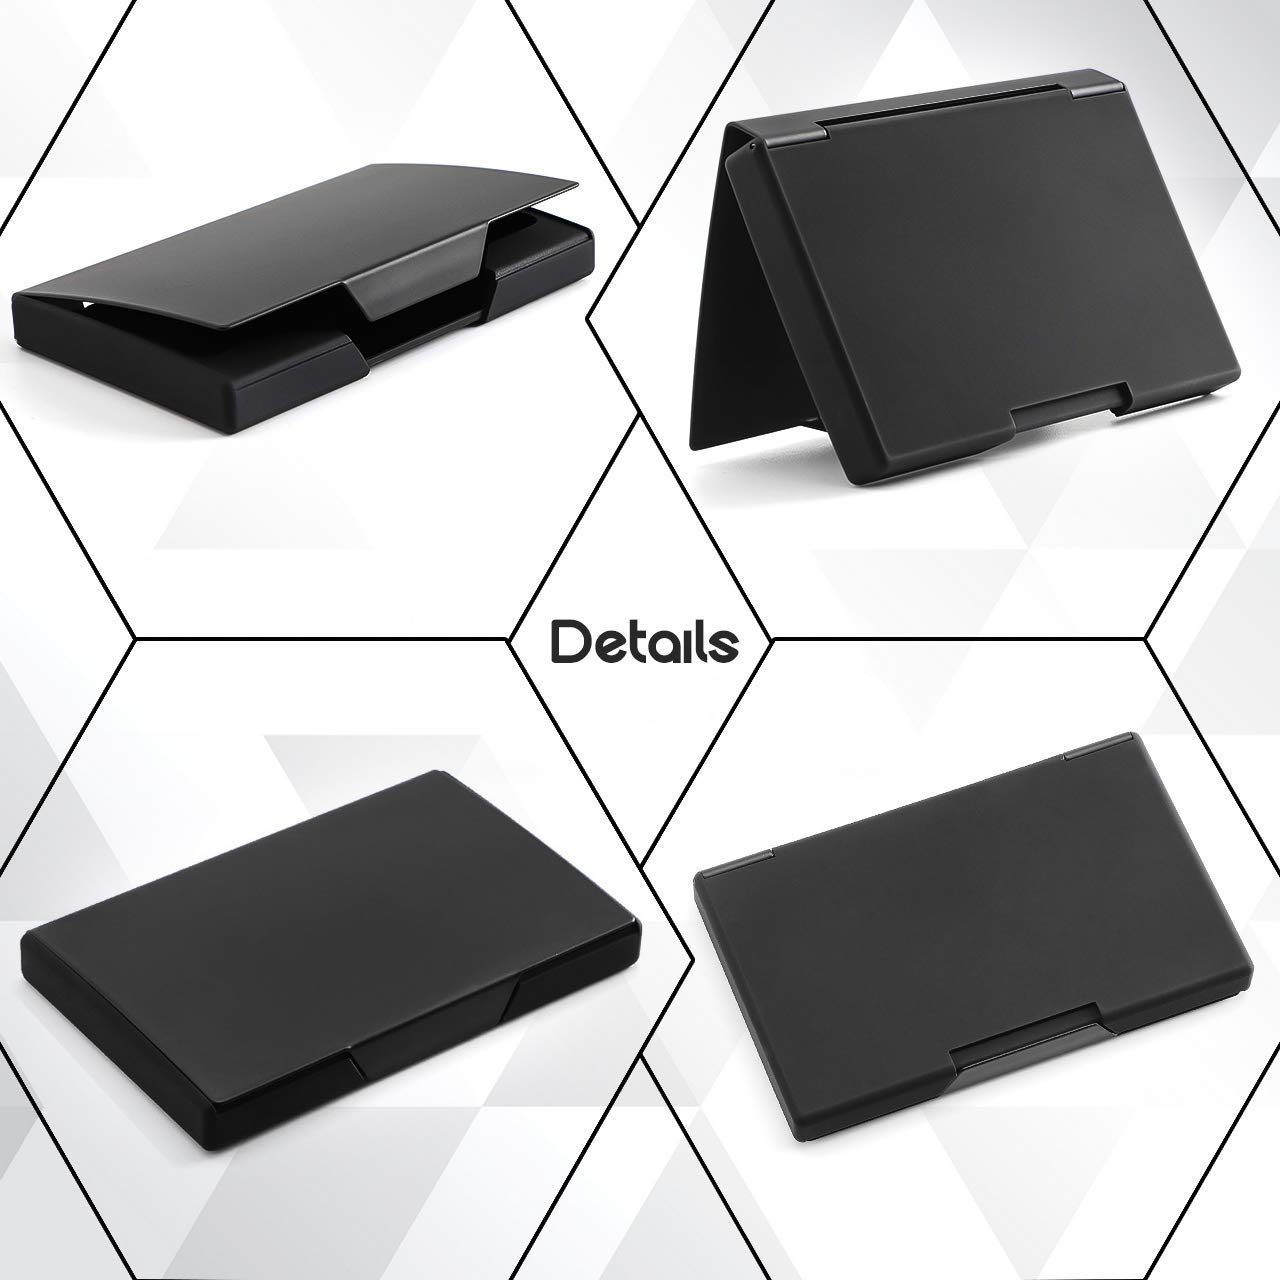 Hamosky Professional Business Card Holder Business Card Case Stainless Steel Card Holder Keep Business Cards in Immaculate Condition NS Black B